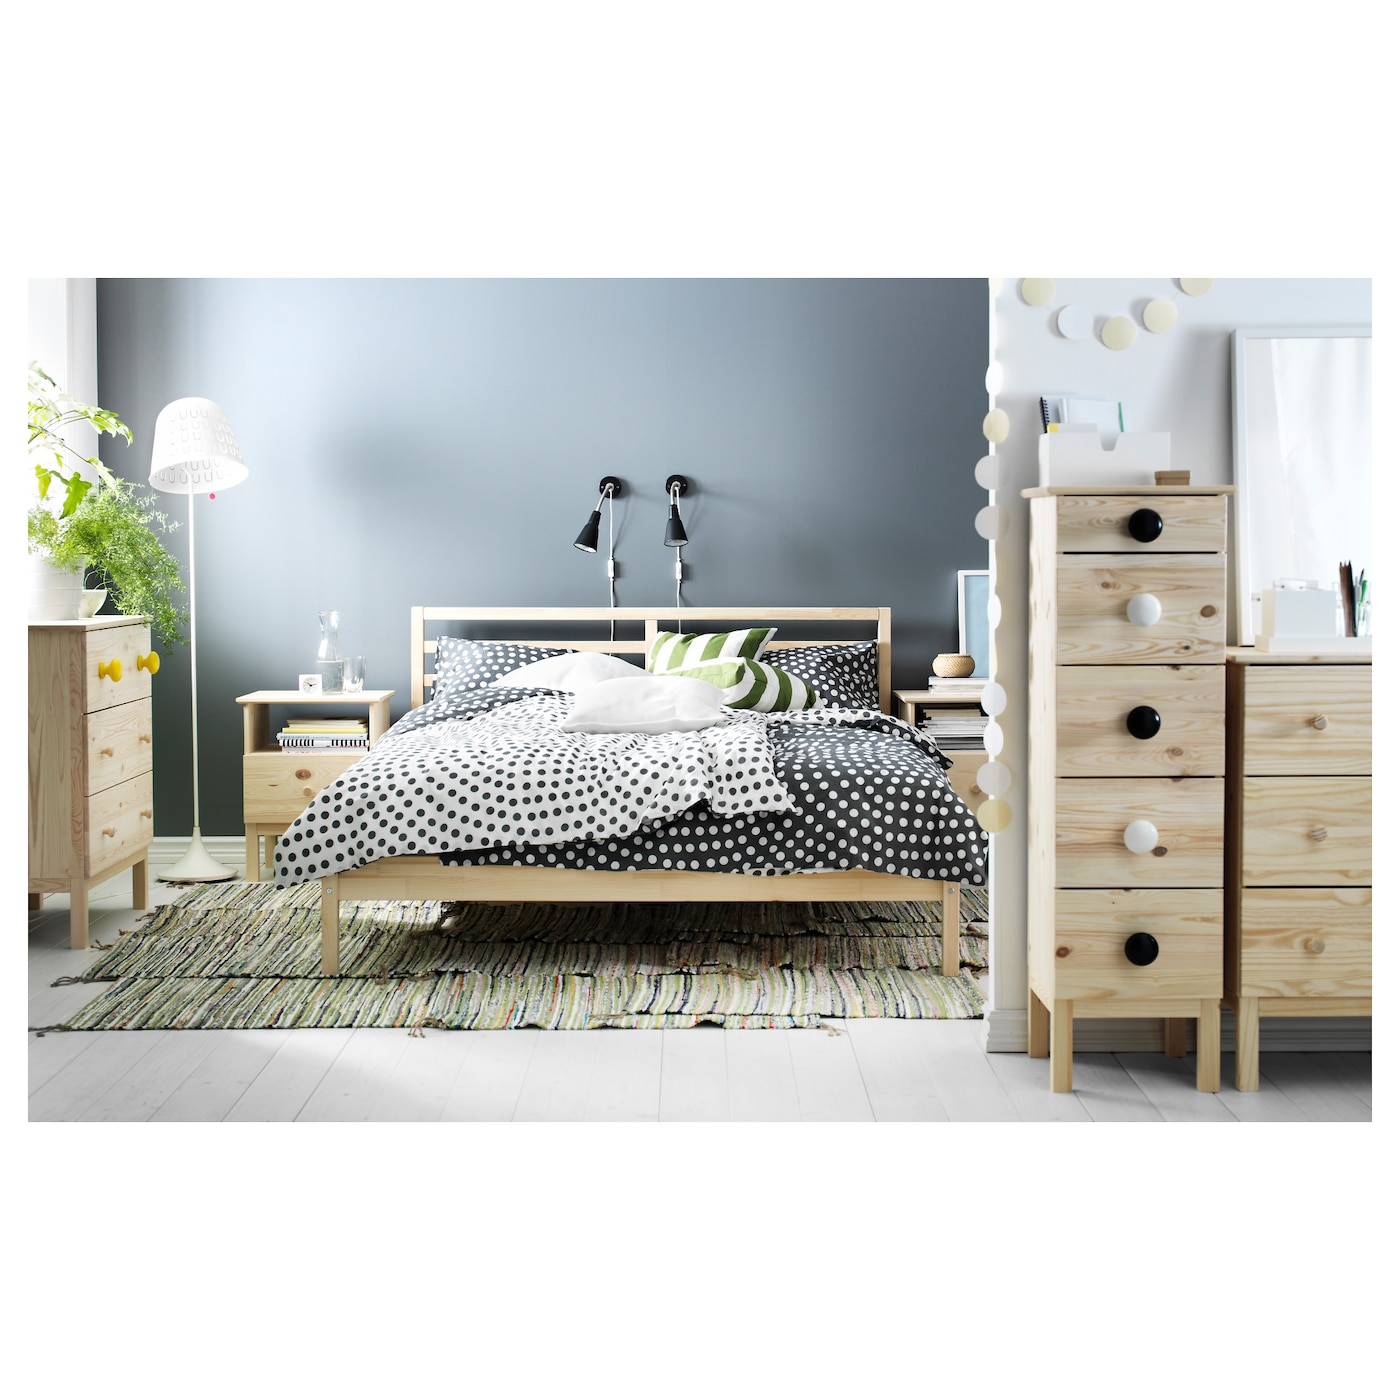 Ikea Floor Lamp Glass Shade Replacement ~ IKEA TARVA bed frame Made of solid wood, which is a hardwearing and